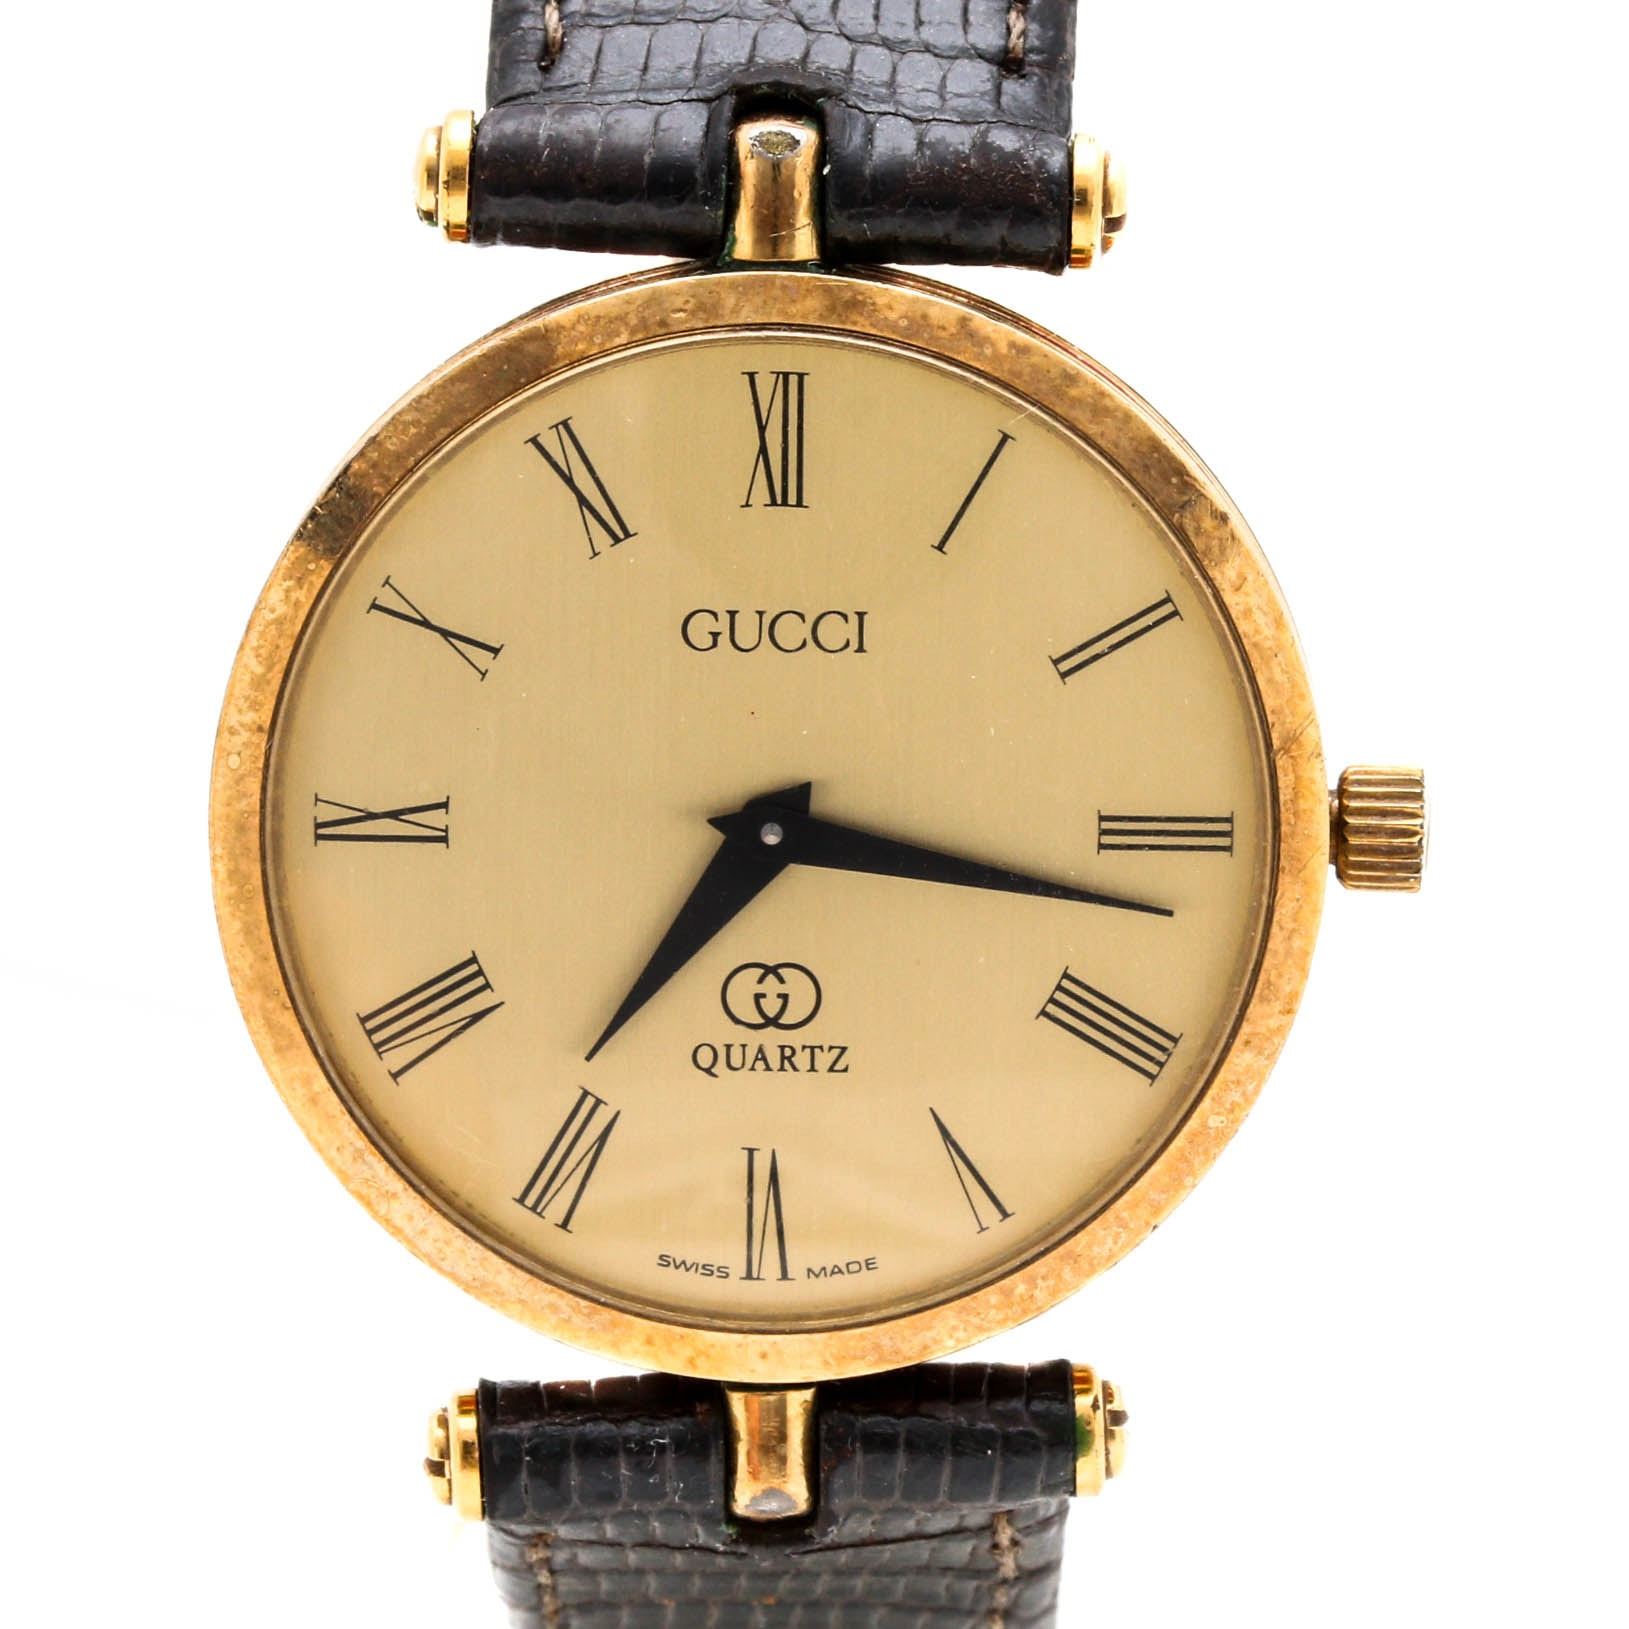 Gucci Red and Green Stripe Enameled Leather Analog Wristwatch